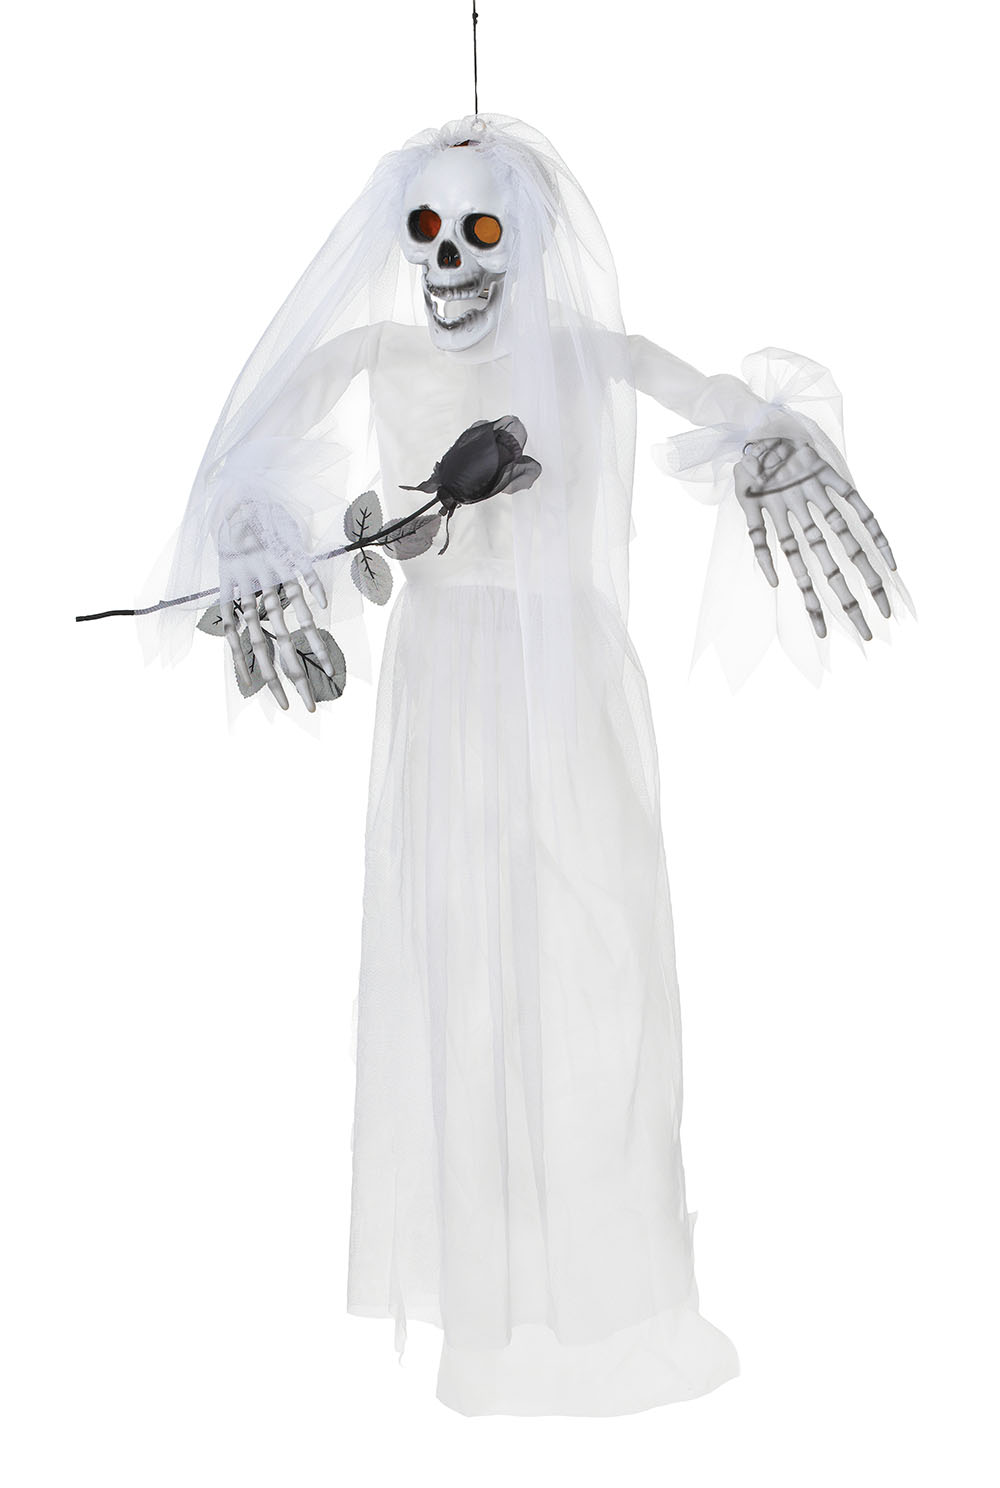 Vintage christmas decorations to make - This Hanging Skeleton Bride Is And Adult Item And Not Suitable For